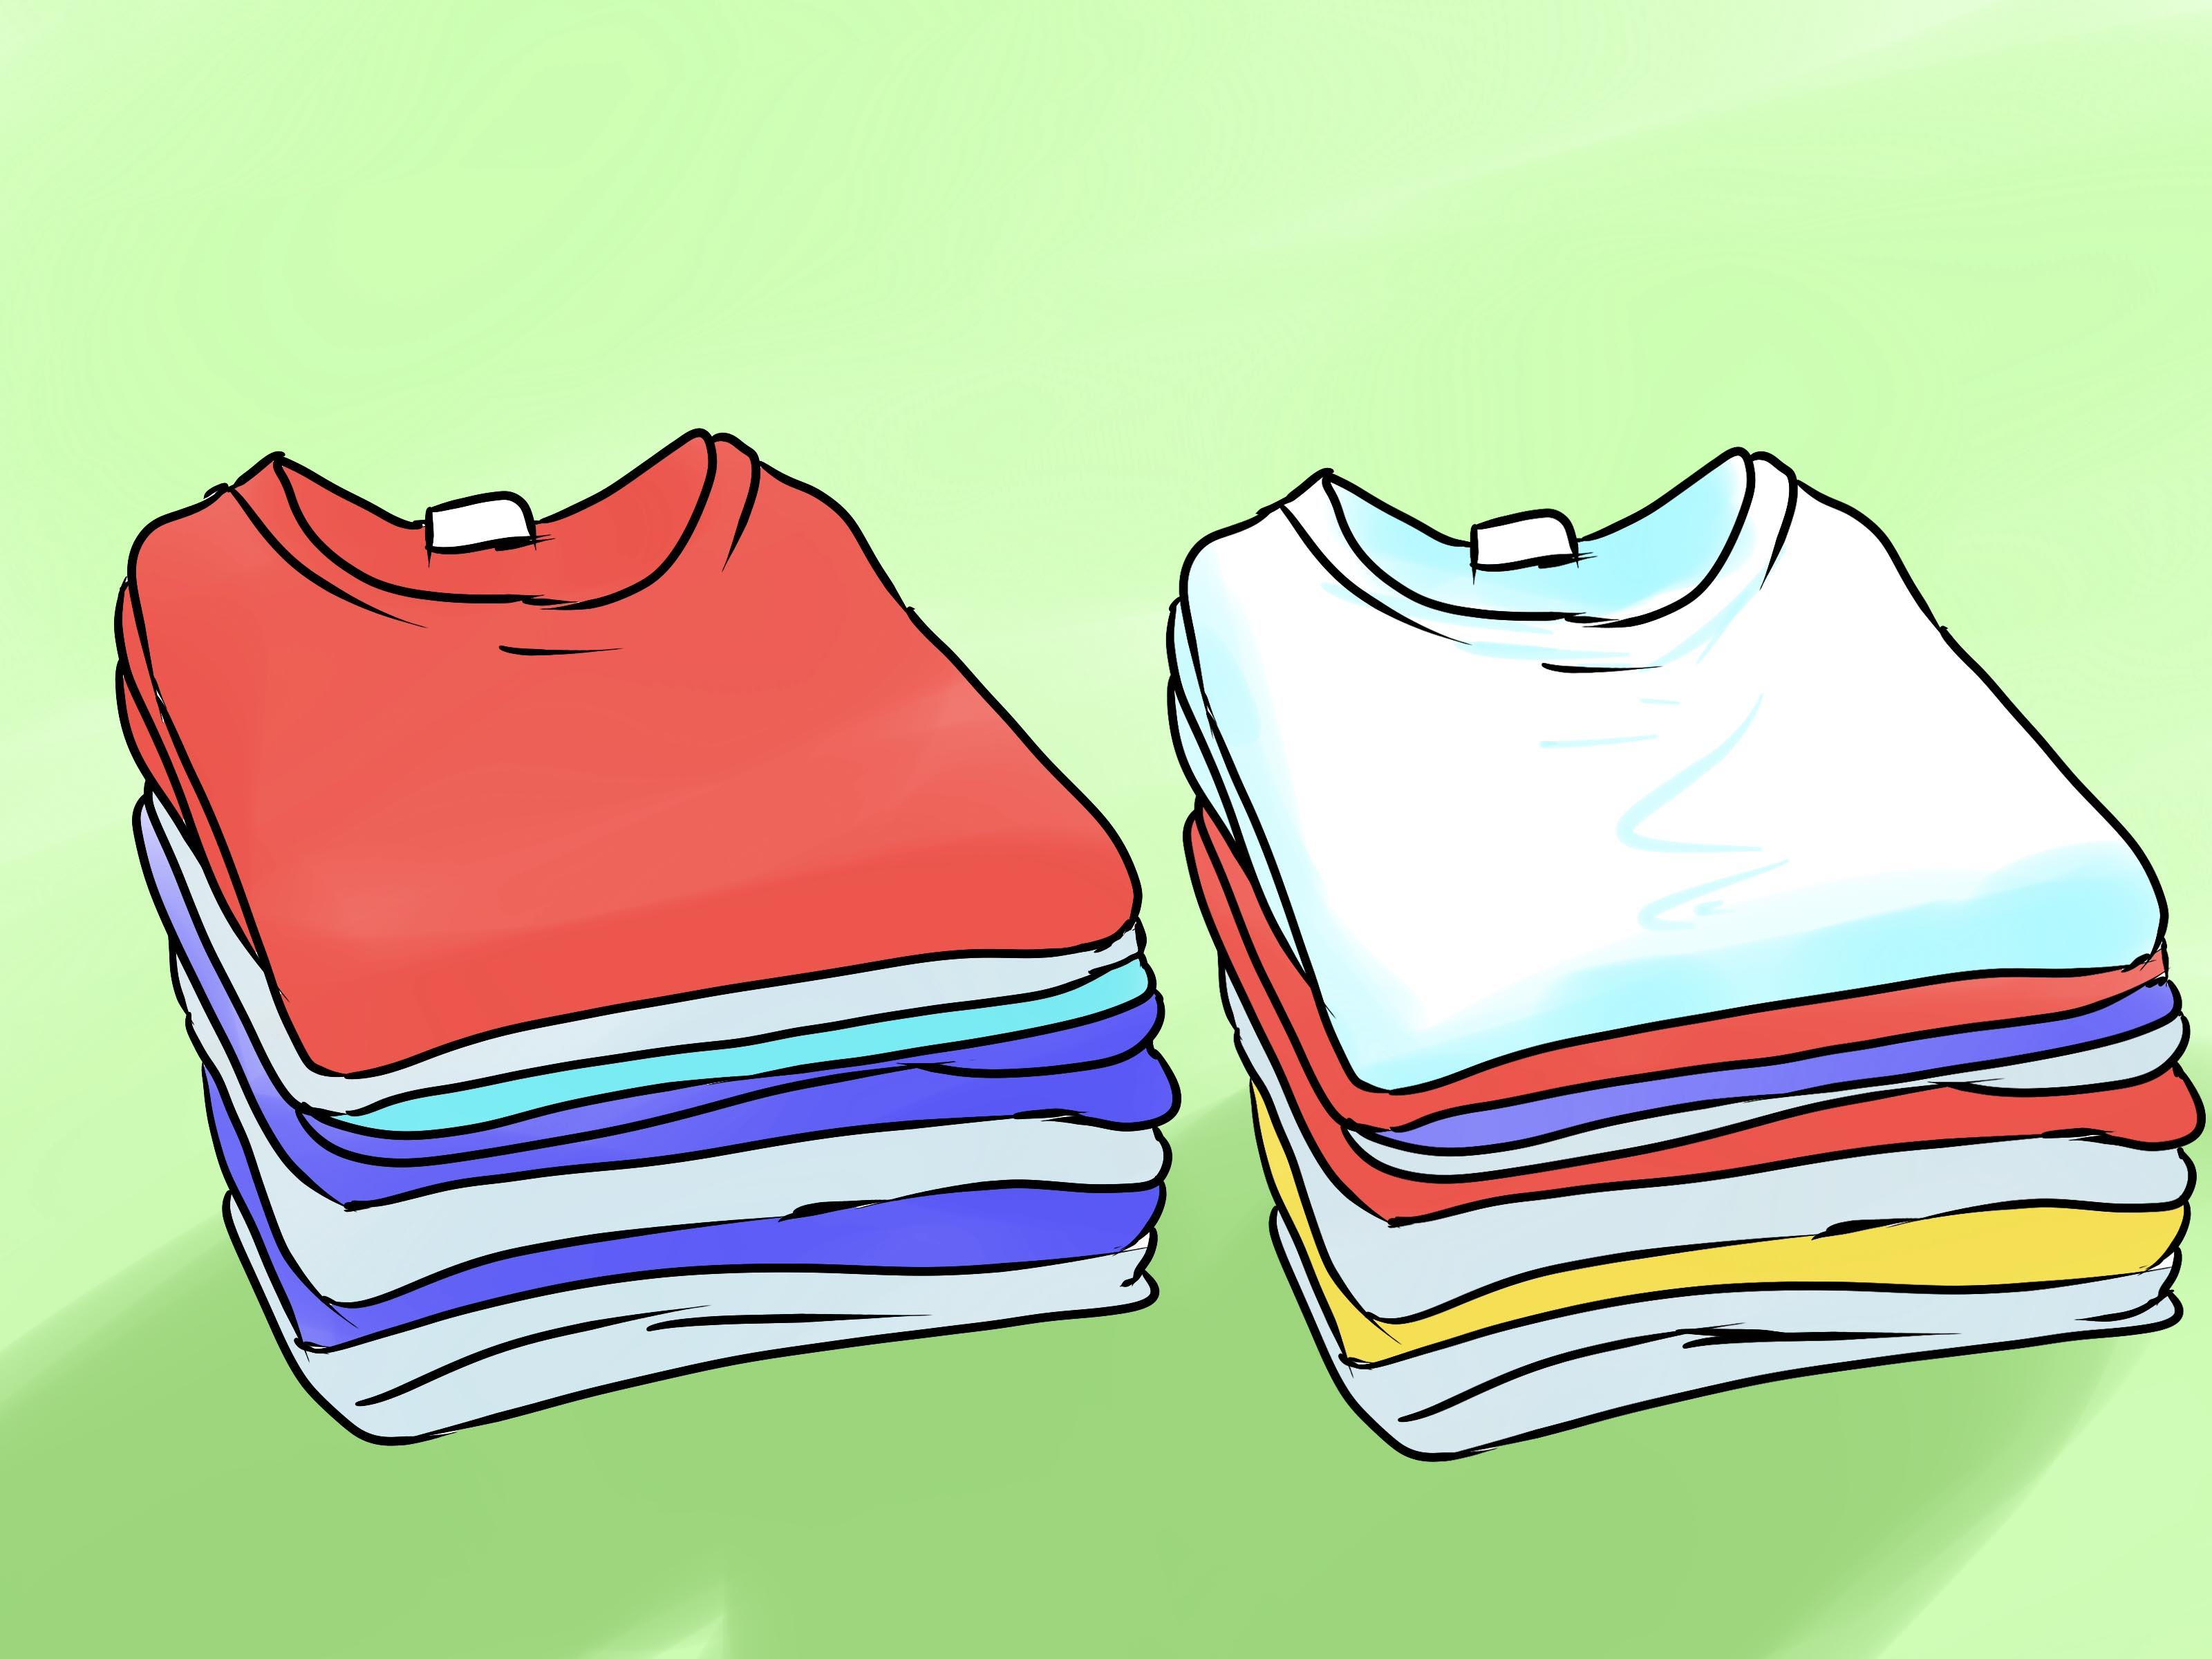 Free cleaning cliparts download. Clothing clipart folded clothes